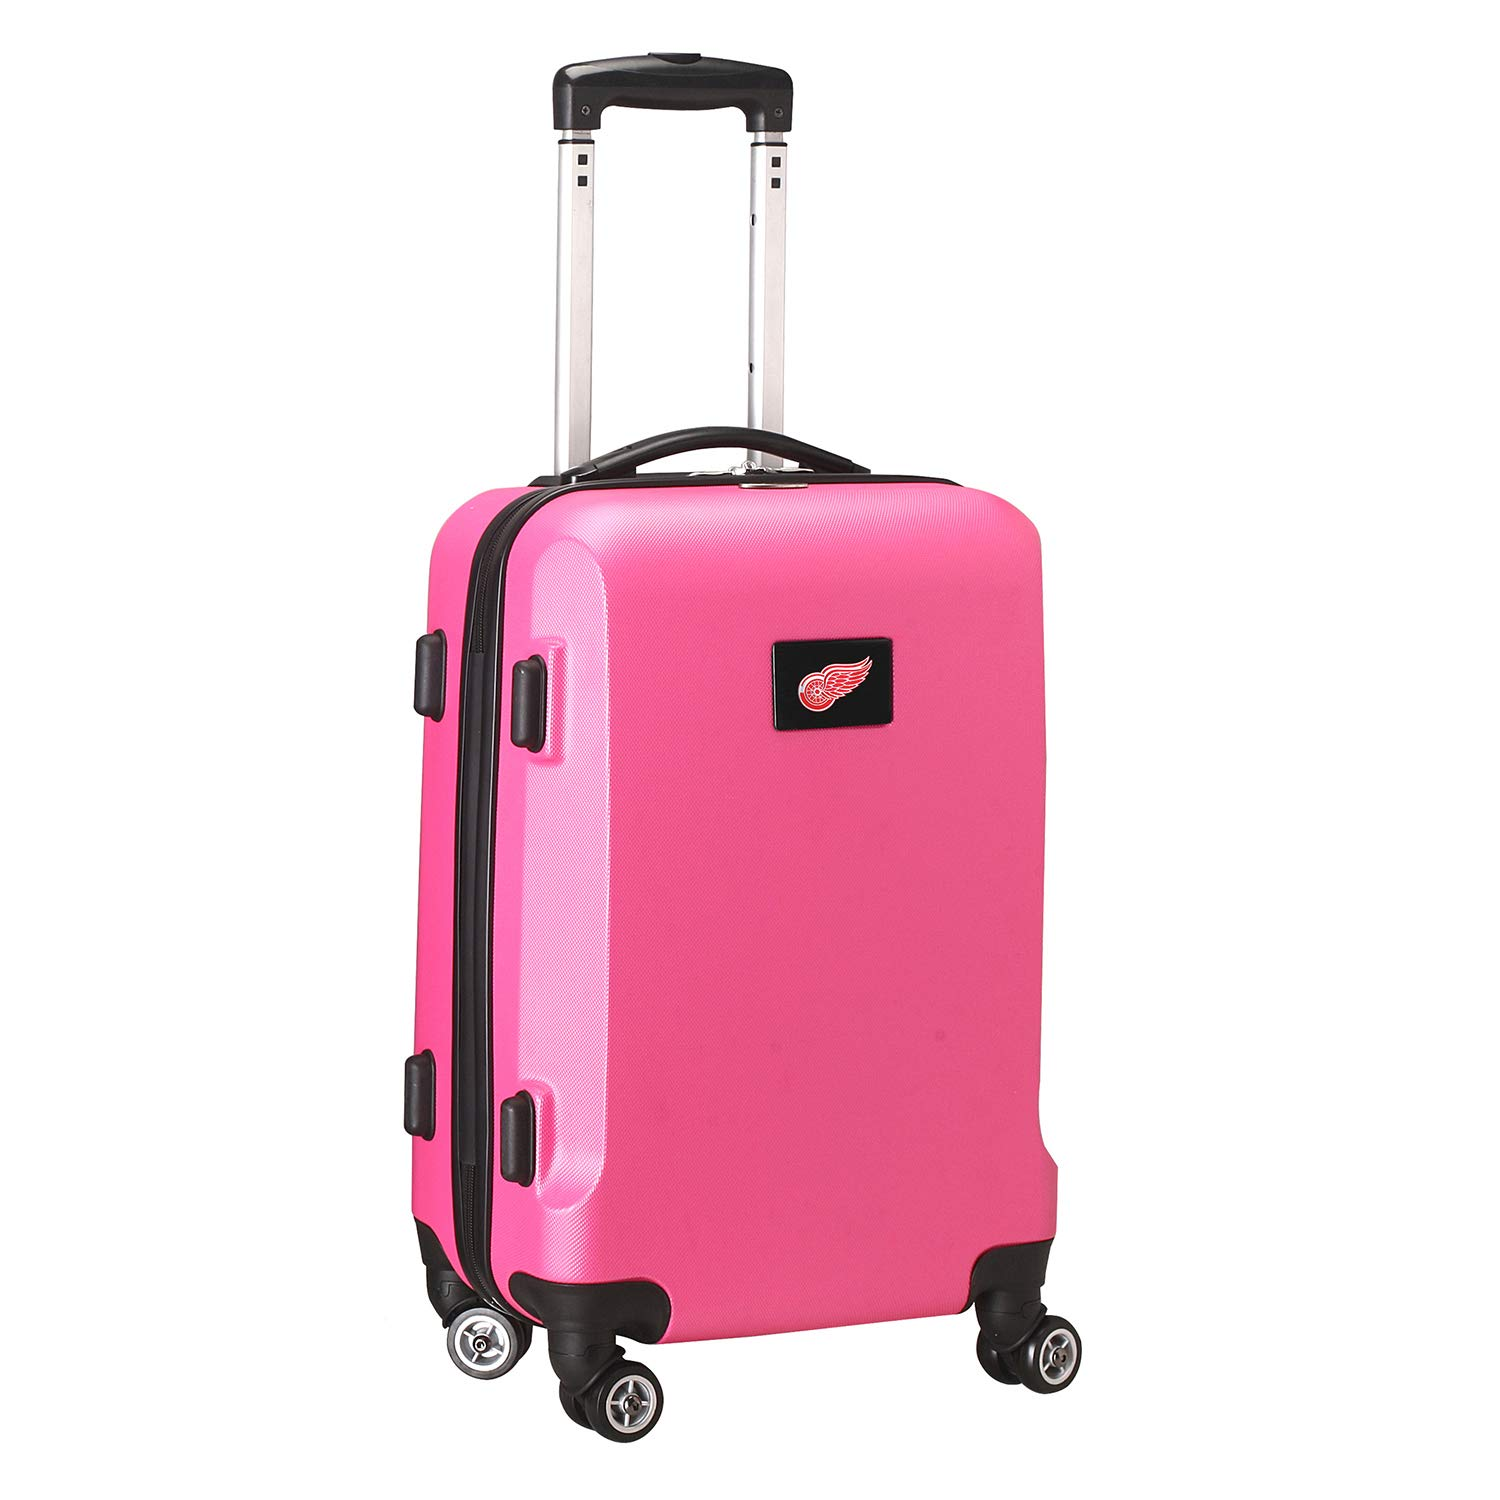 NHL Detroit Red Wings Carry-On Hardcase Luggage Spinner, Pink